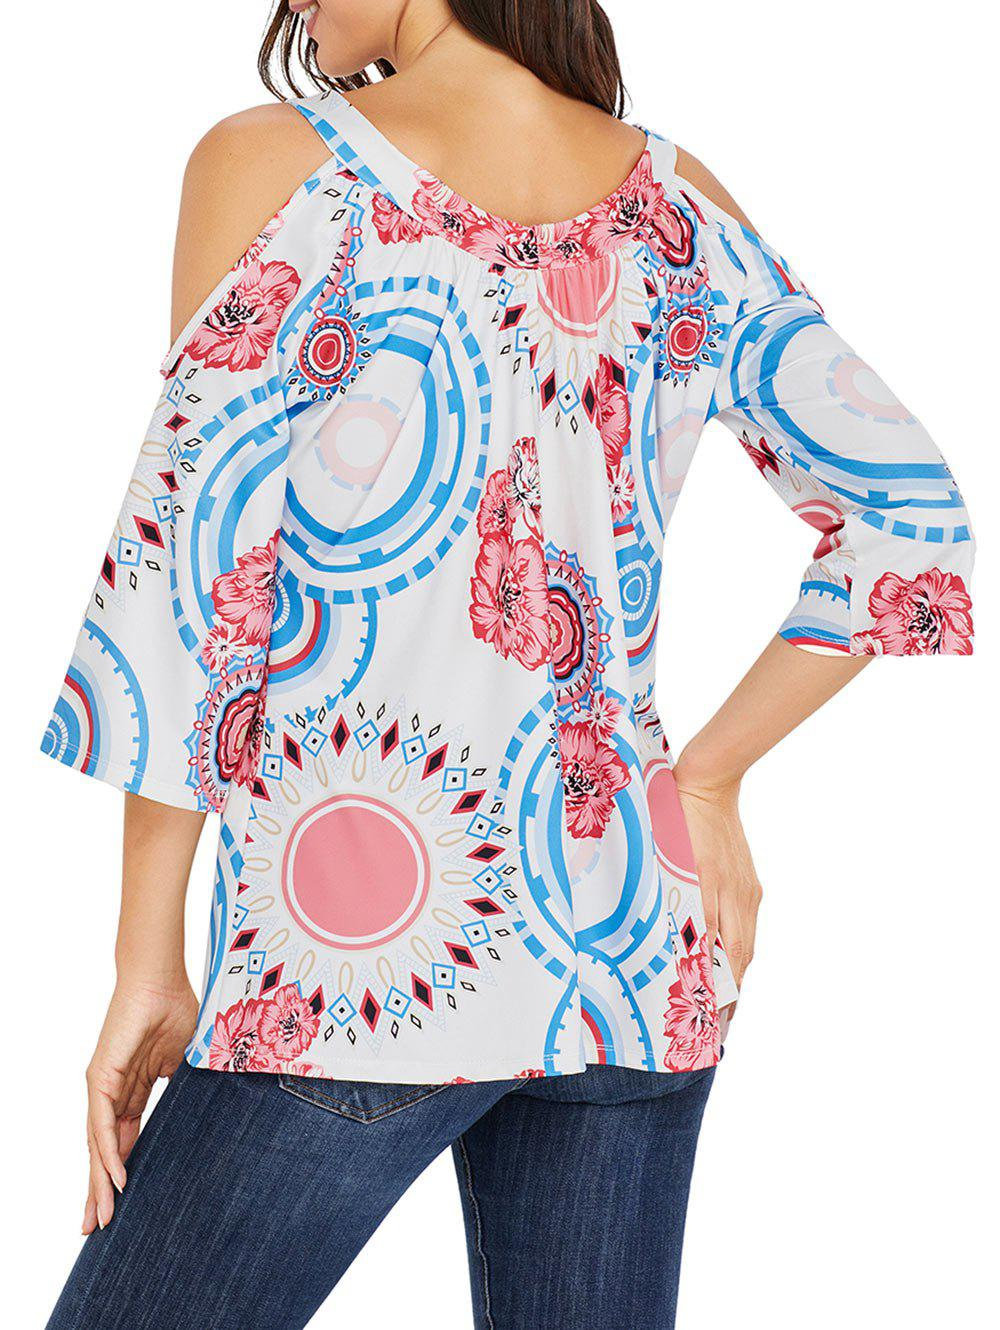 Floral and Circle Print Cold Shoulder Top - WHITE 2XL